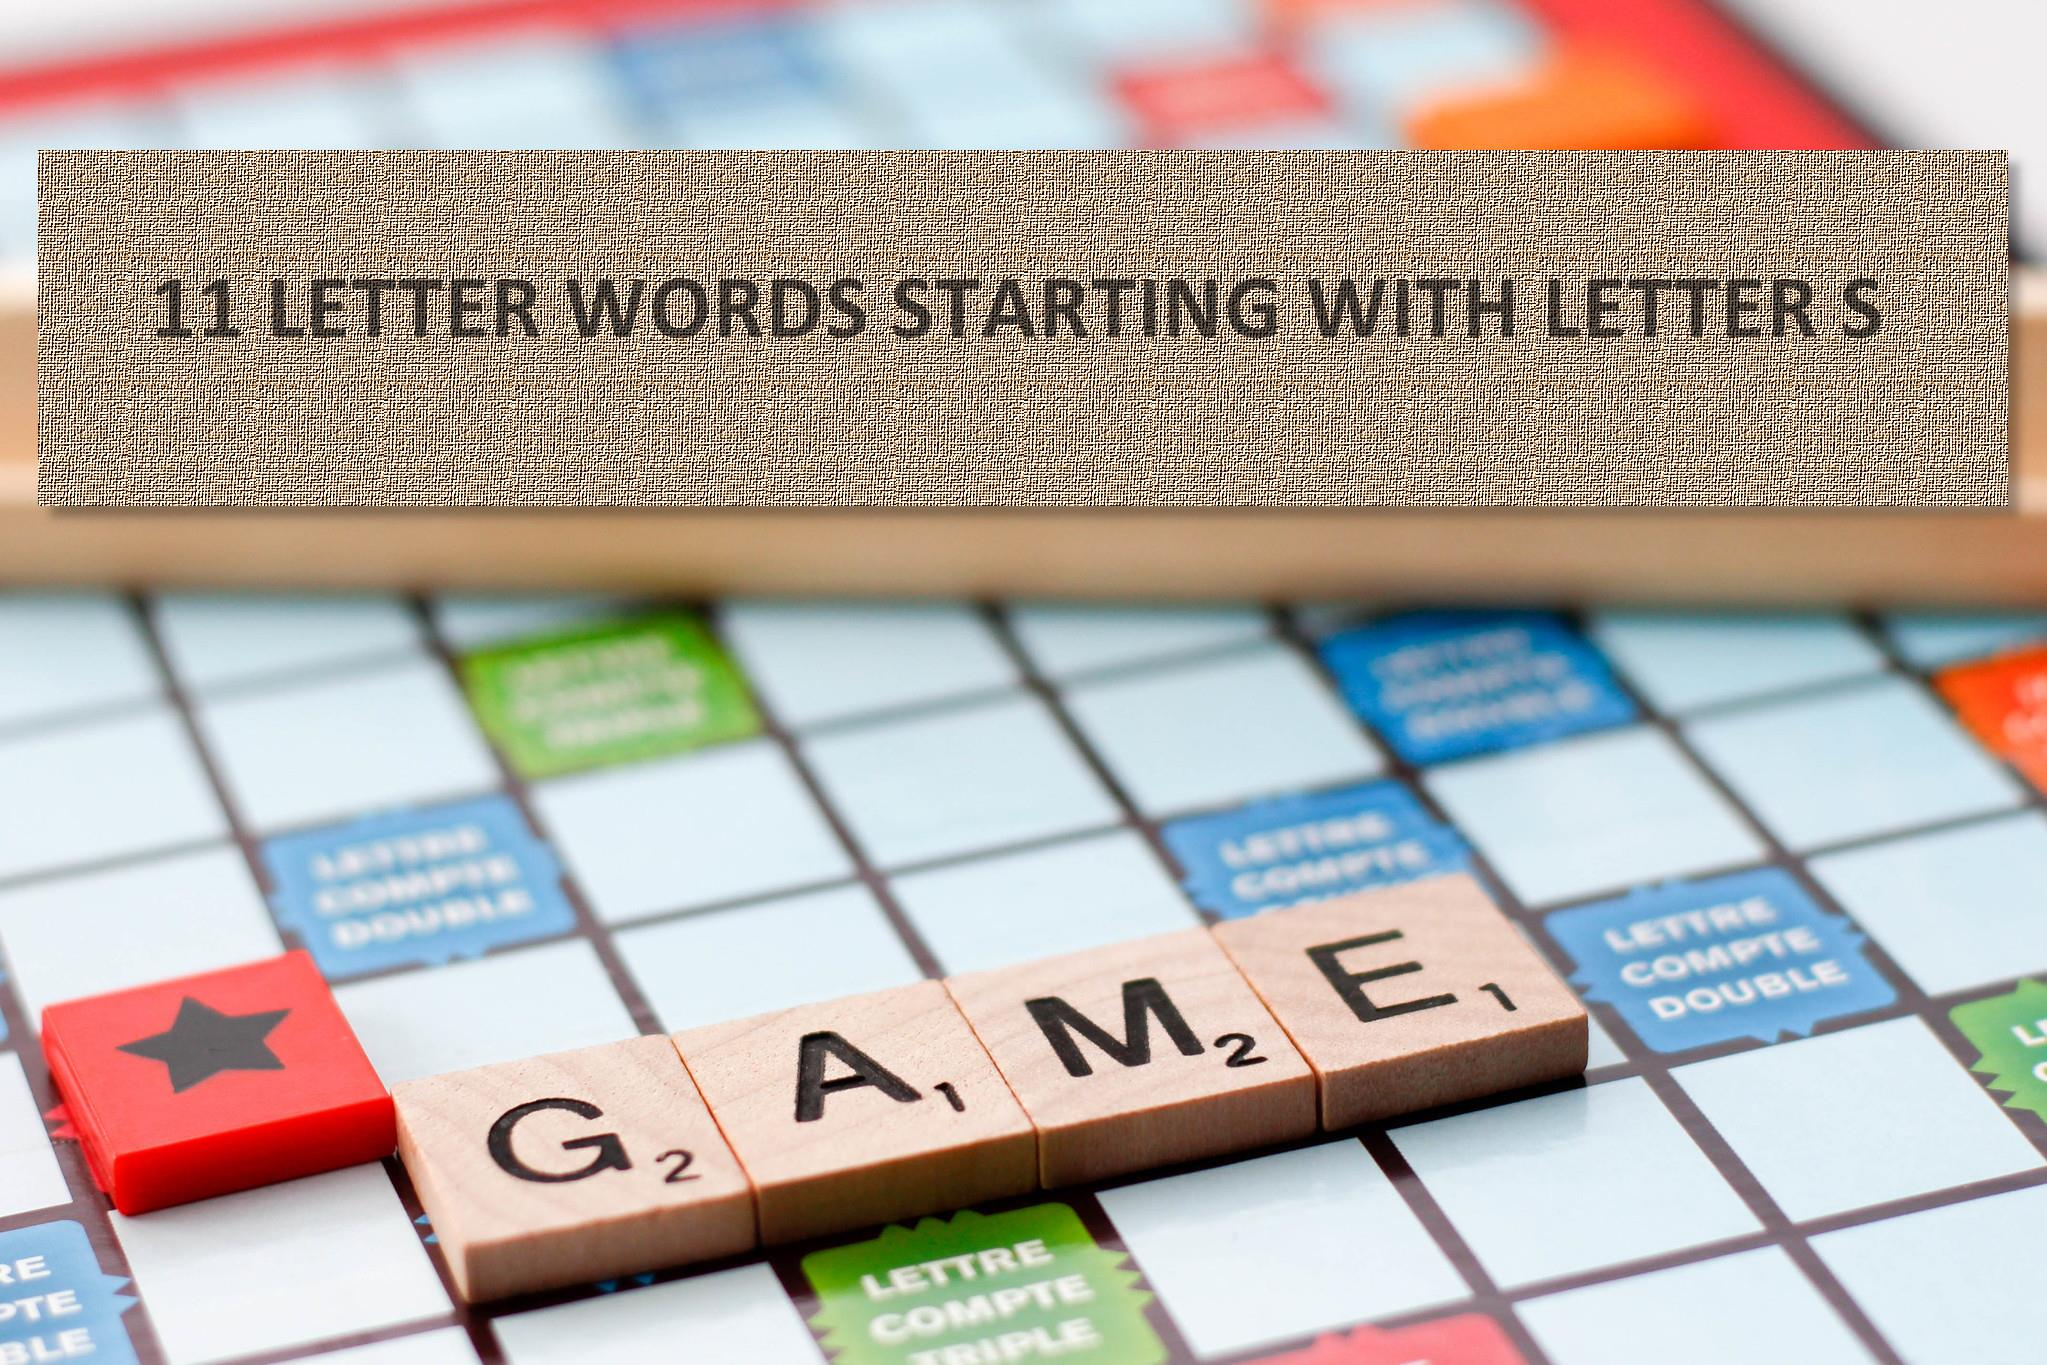 Poocoo 11 Letter Words For Scrabble And Word With Friends Starting With The Letter S